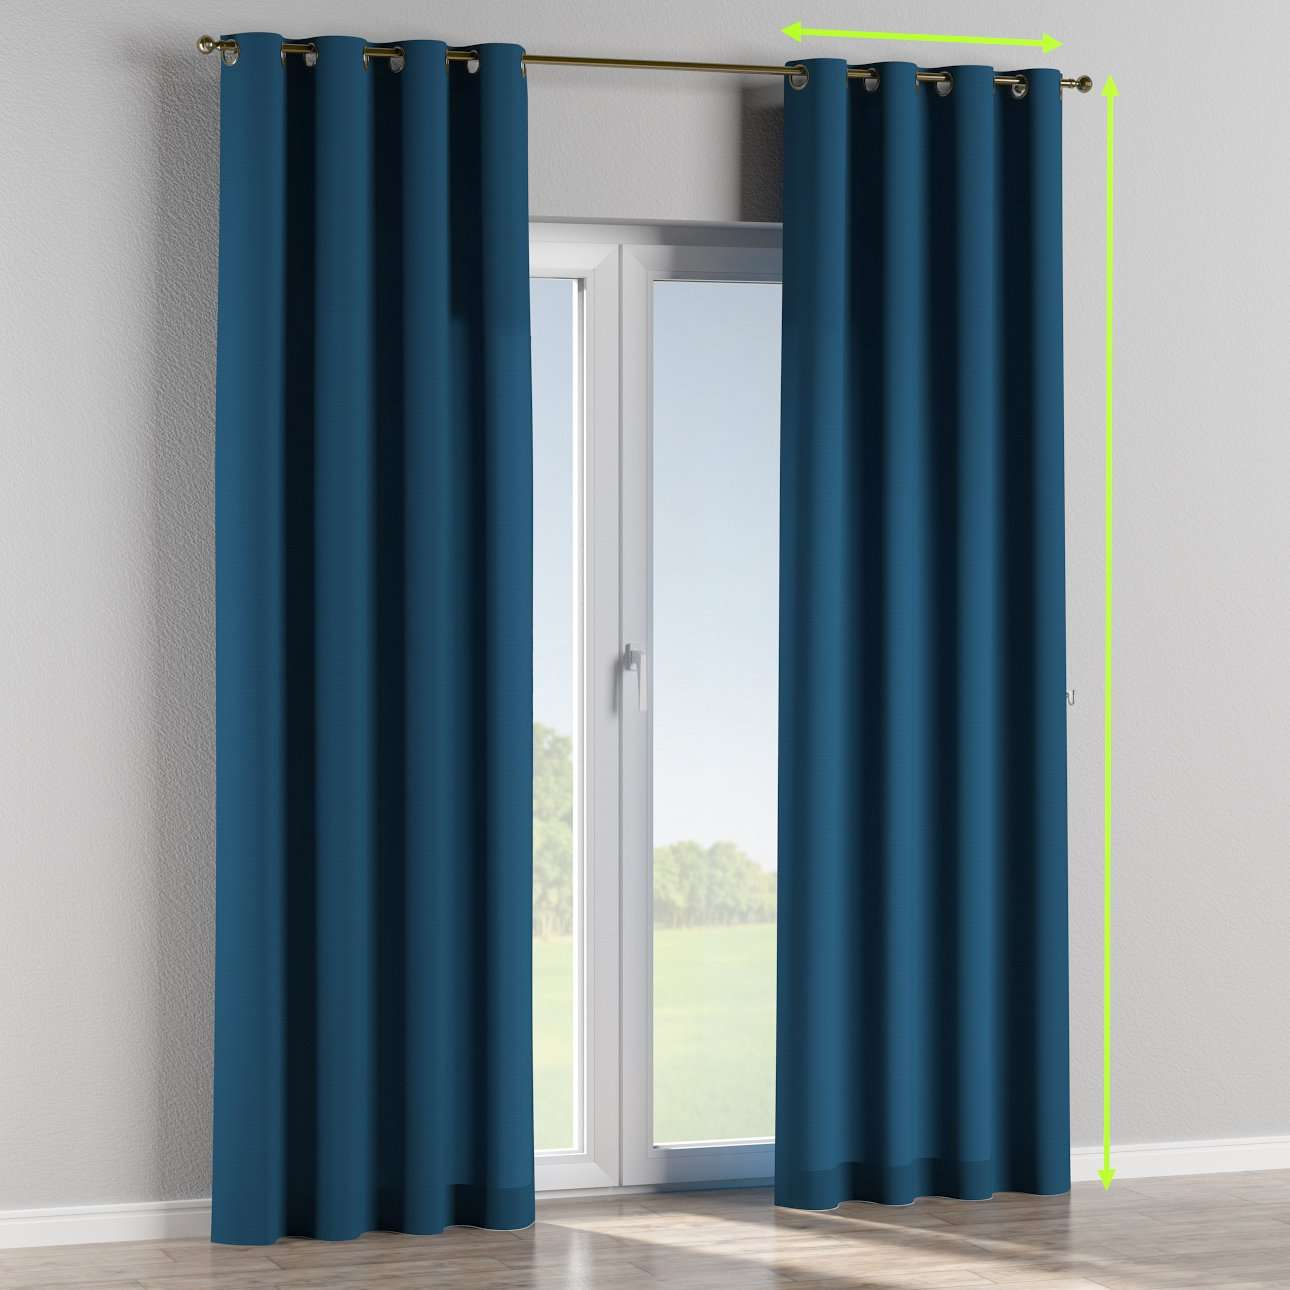 Eyelet curtains in collection Cotton Panama, fabric: 702-30